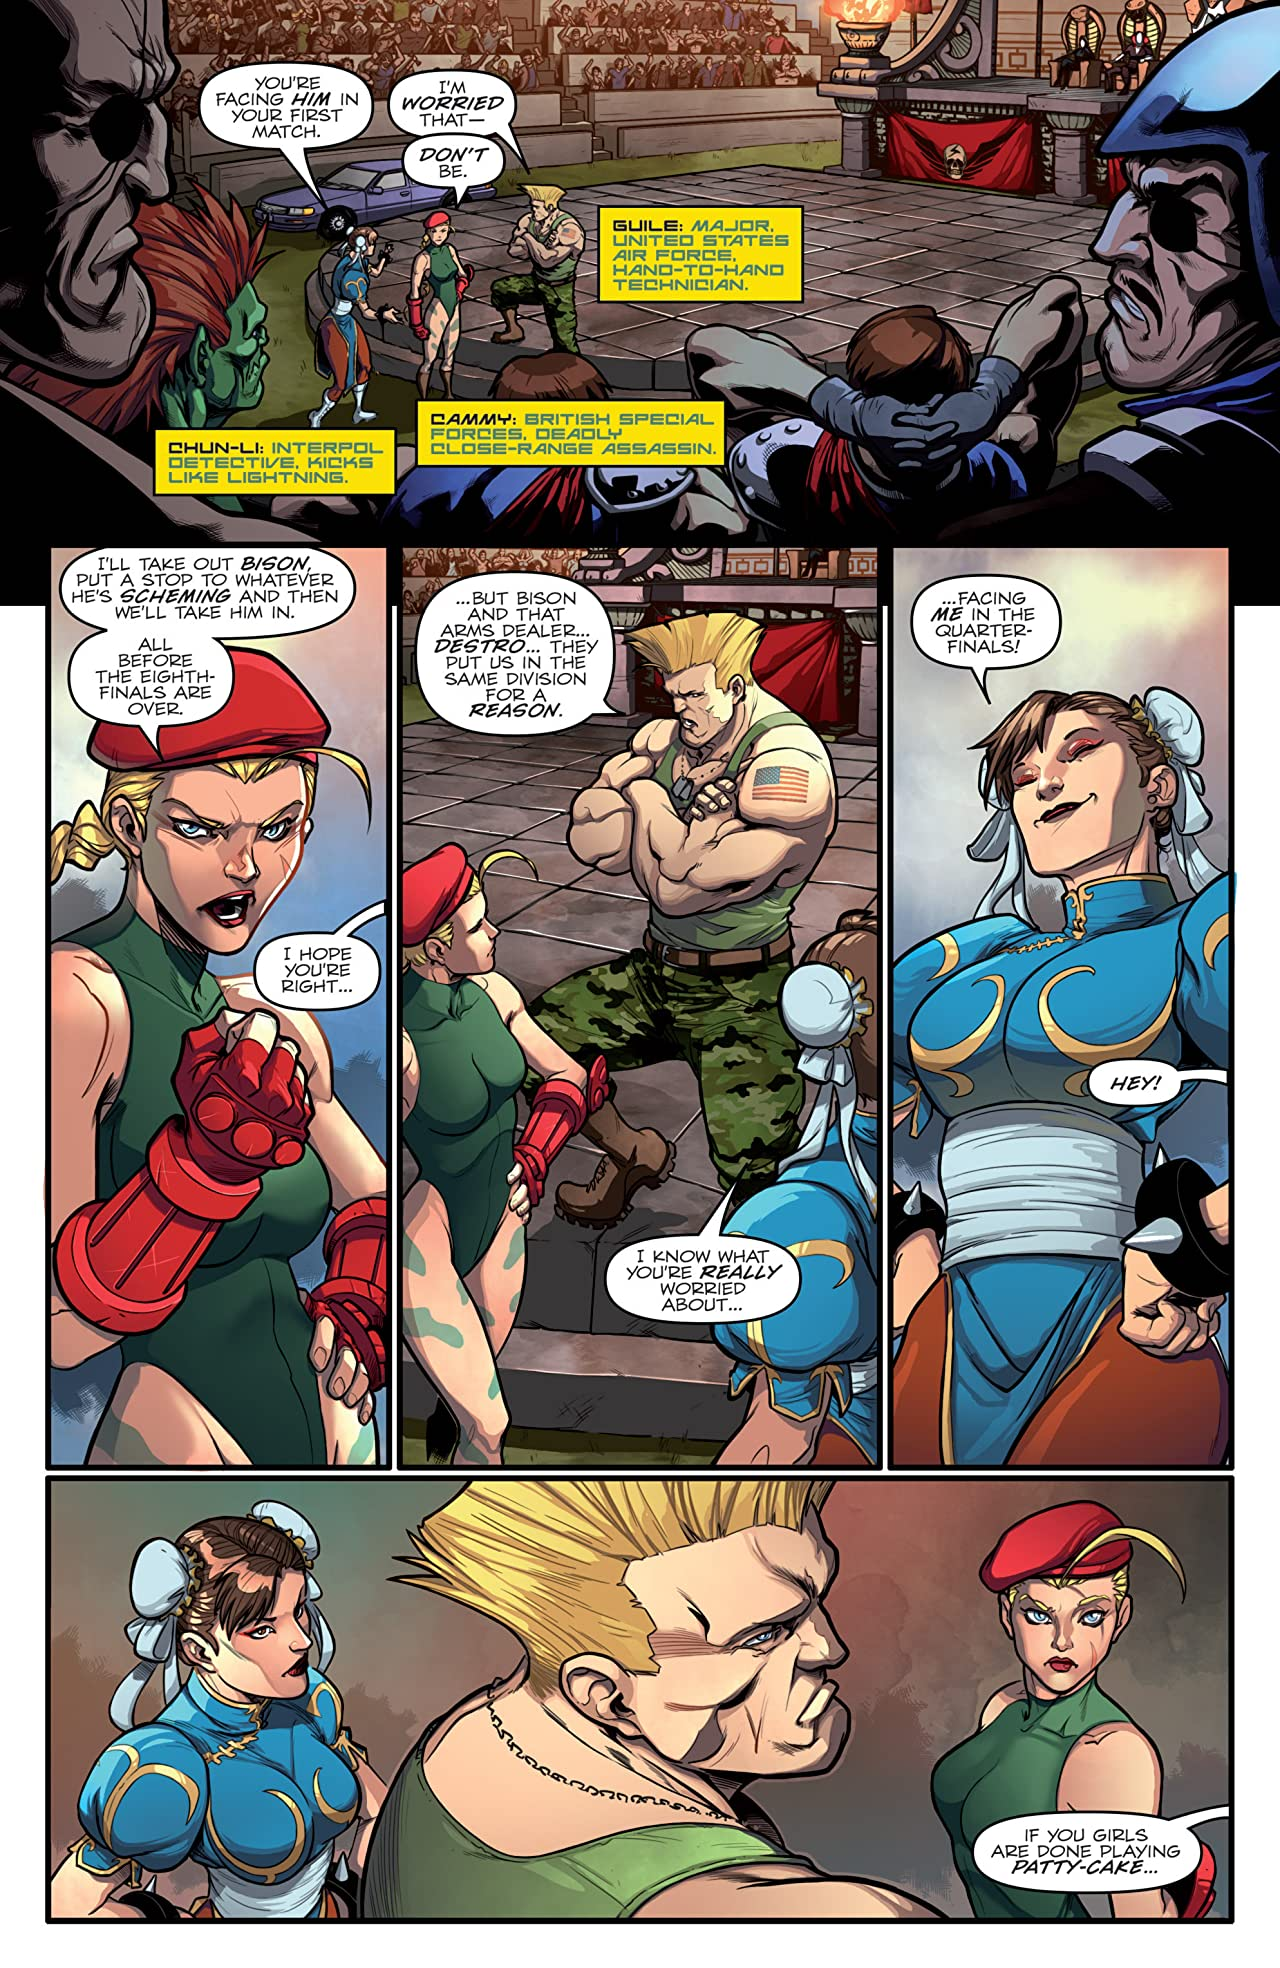 Street Fighter x G.I. Joe #2 (of 6)